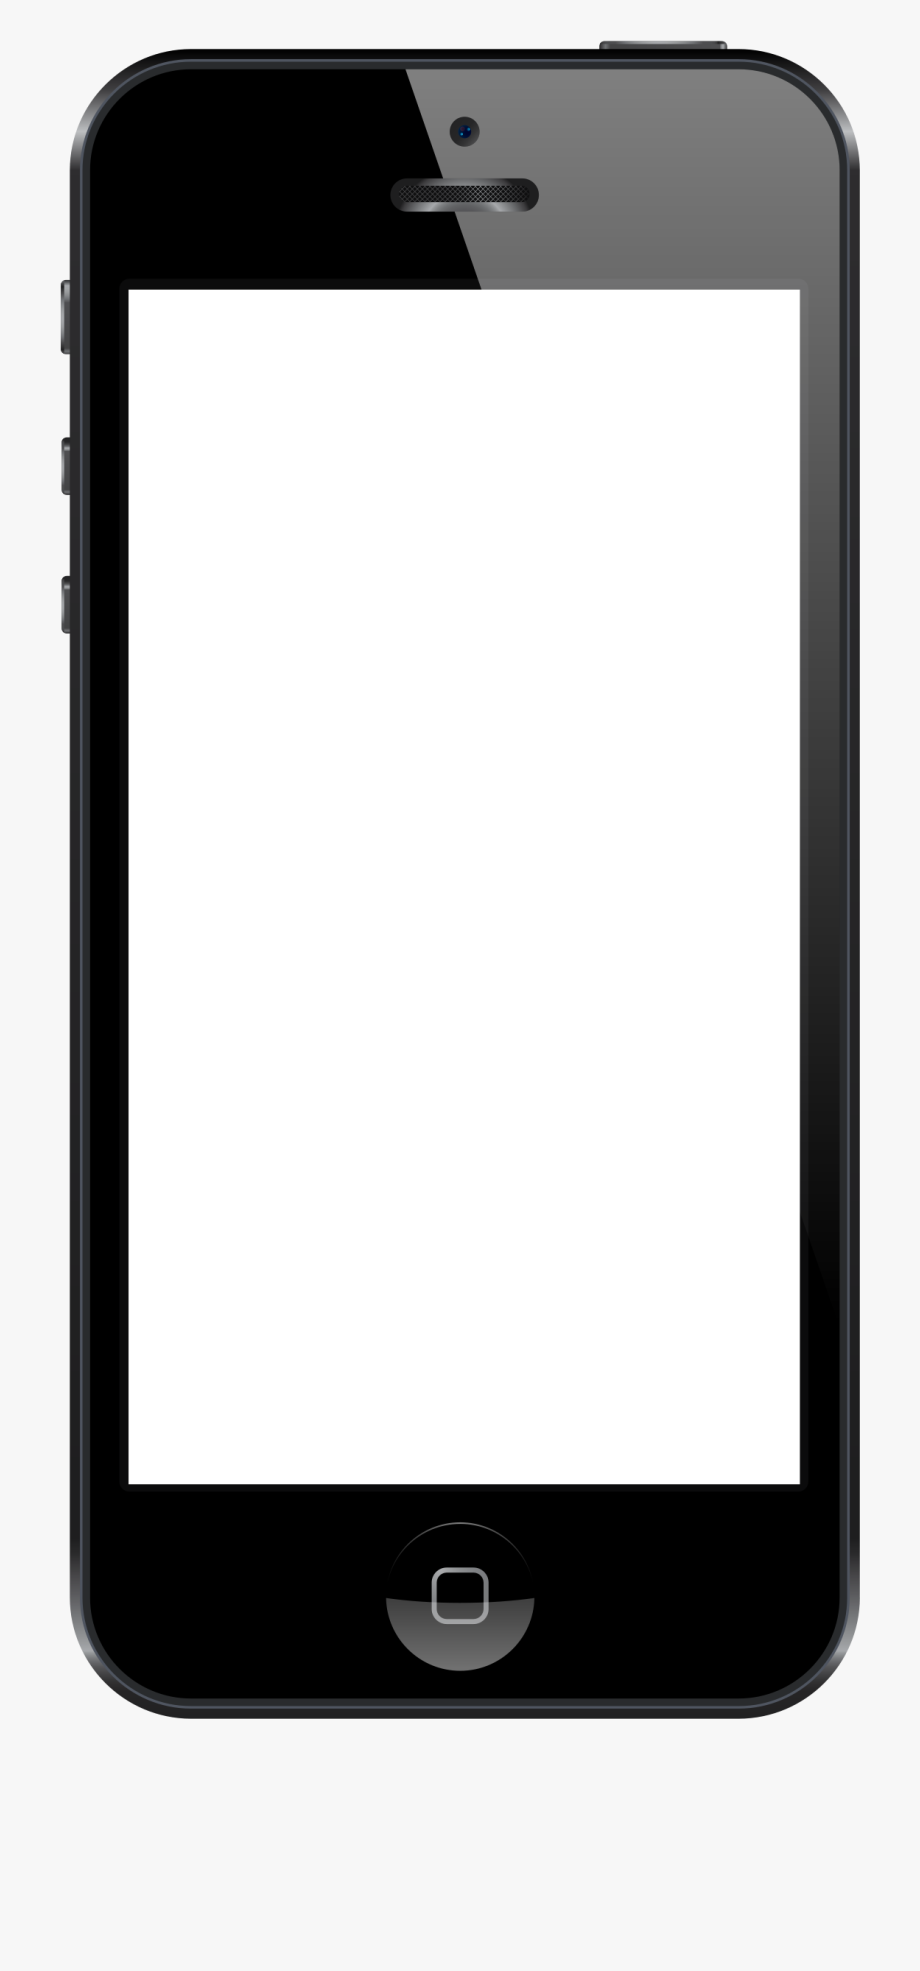 Iphone clipart blank.